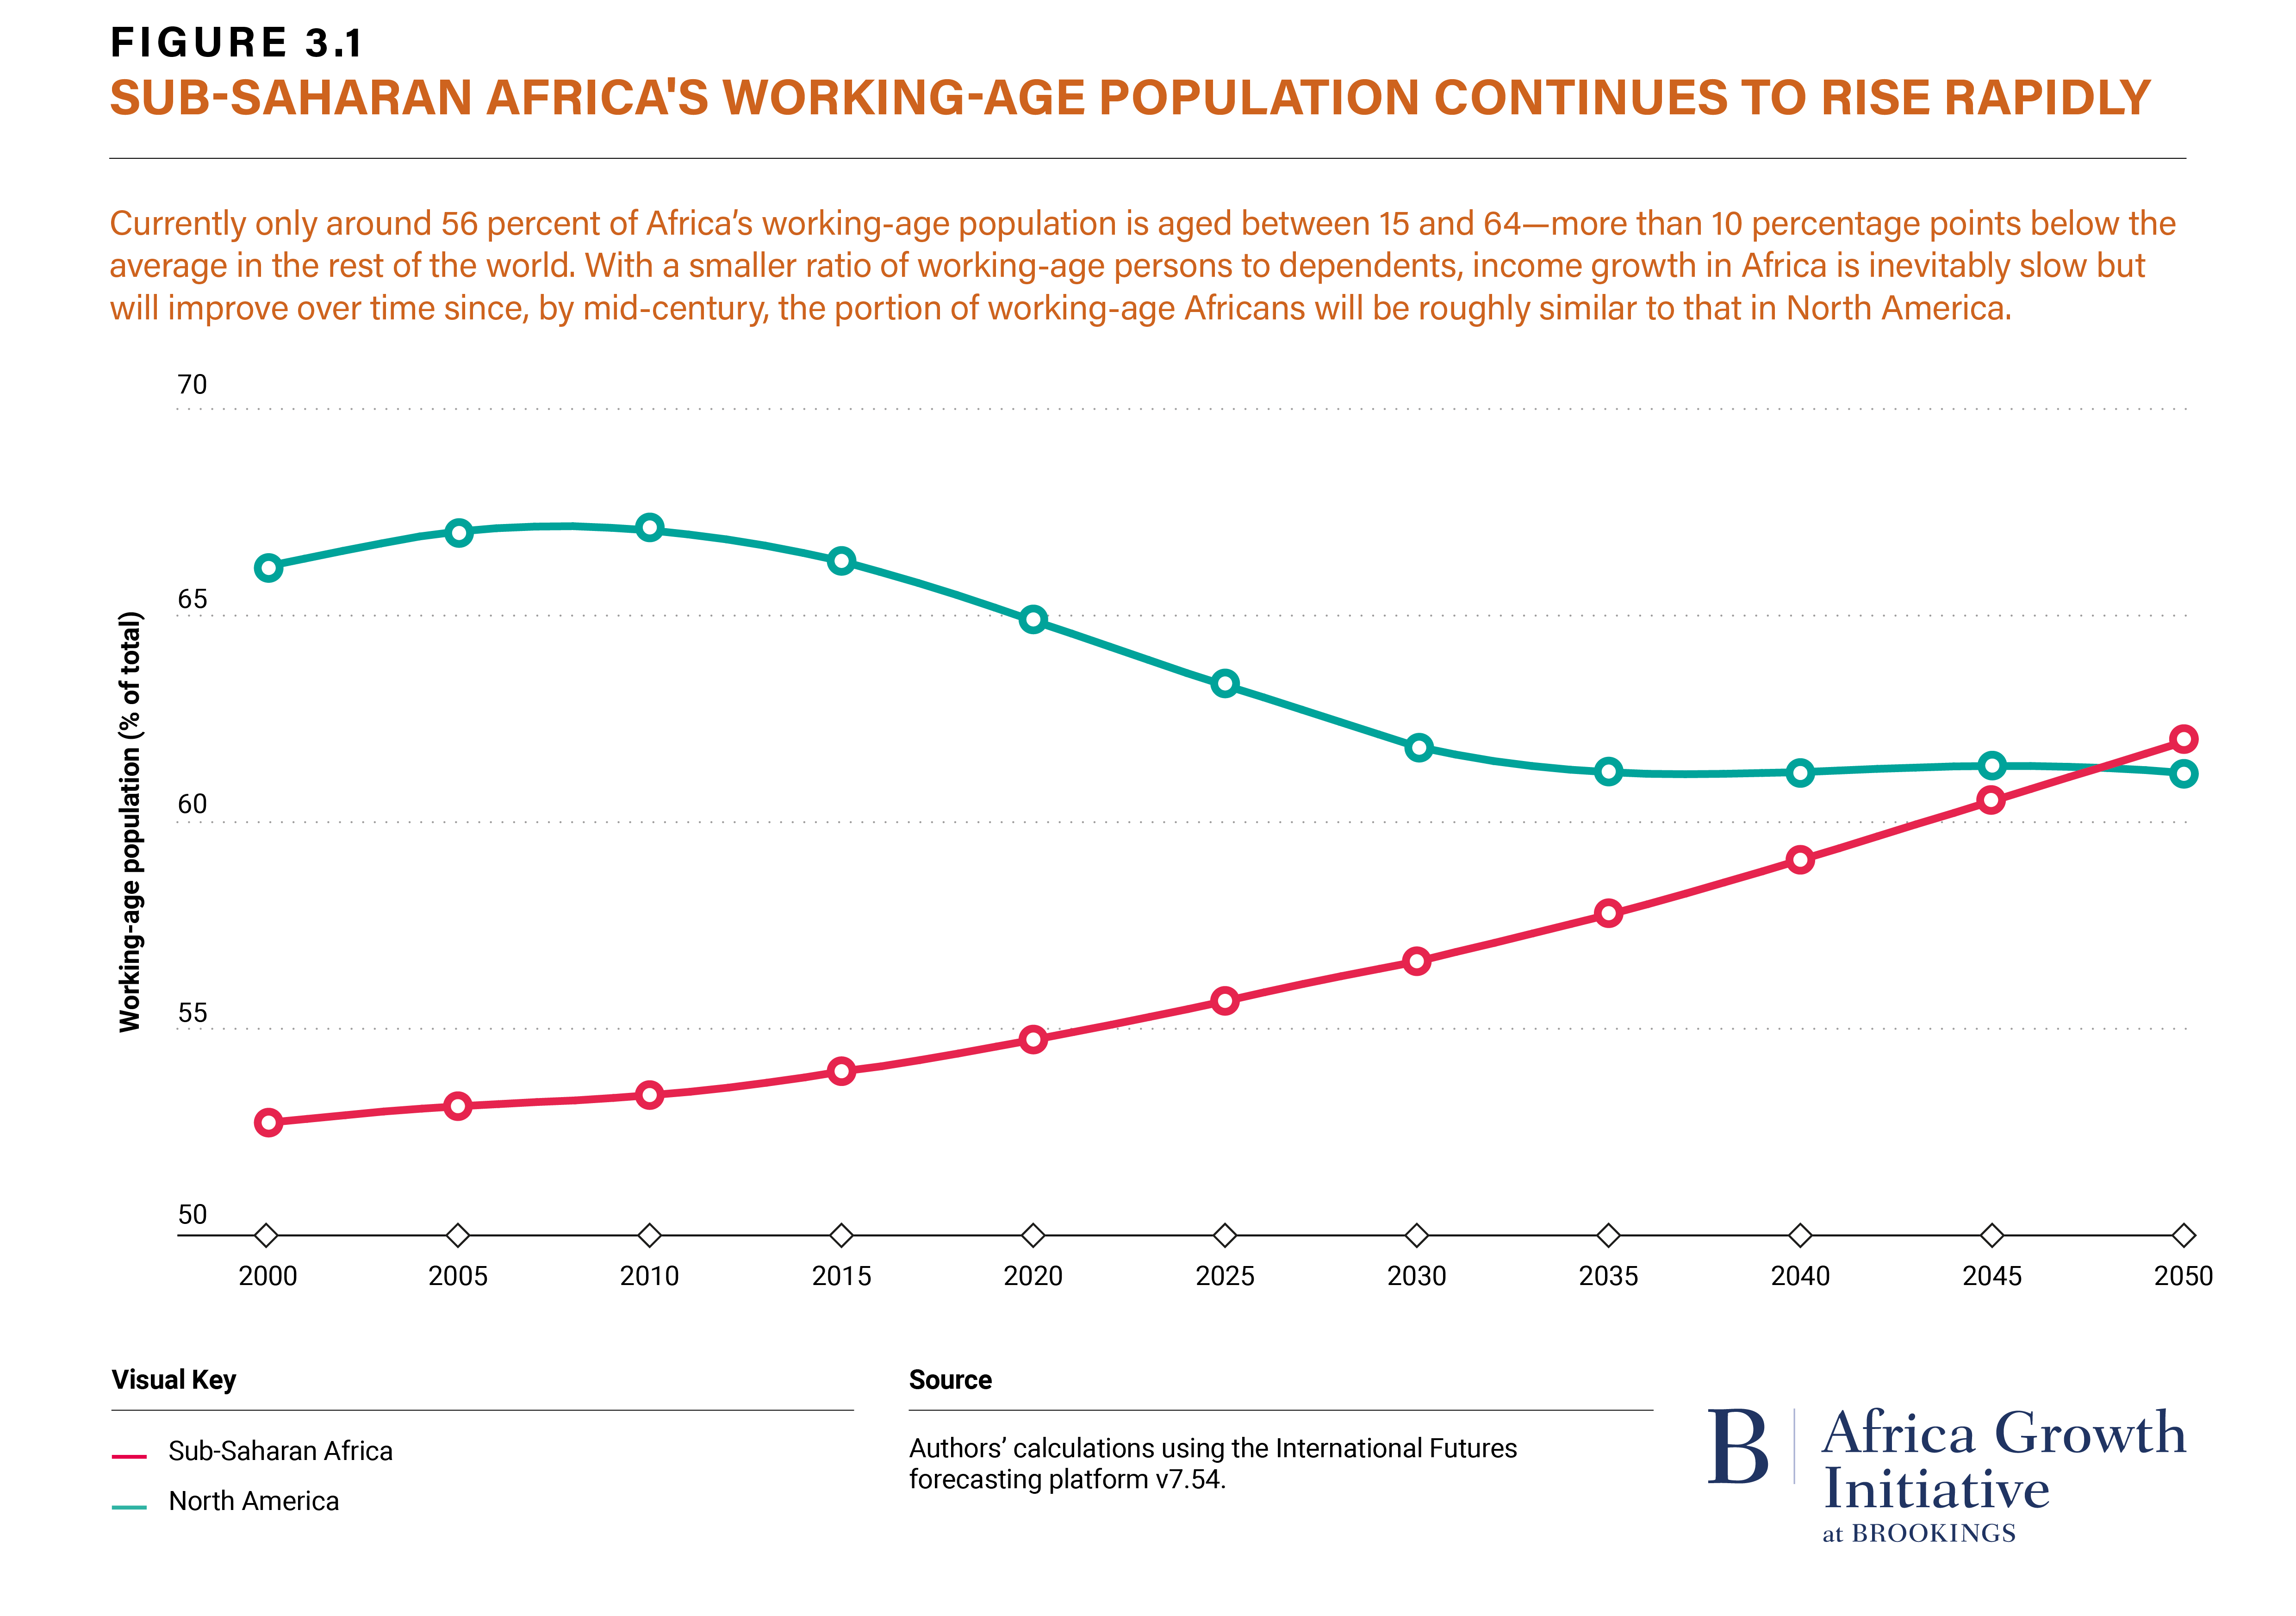 Figure 3.1 Sub-Saharan Africa's Working-Age Population Continues to Rise Rapidly